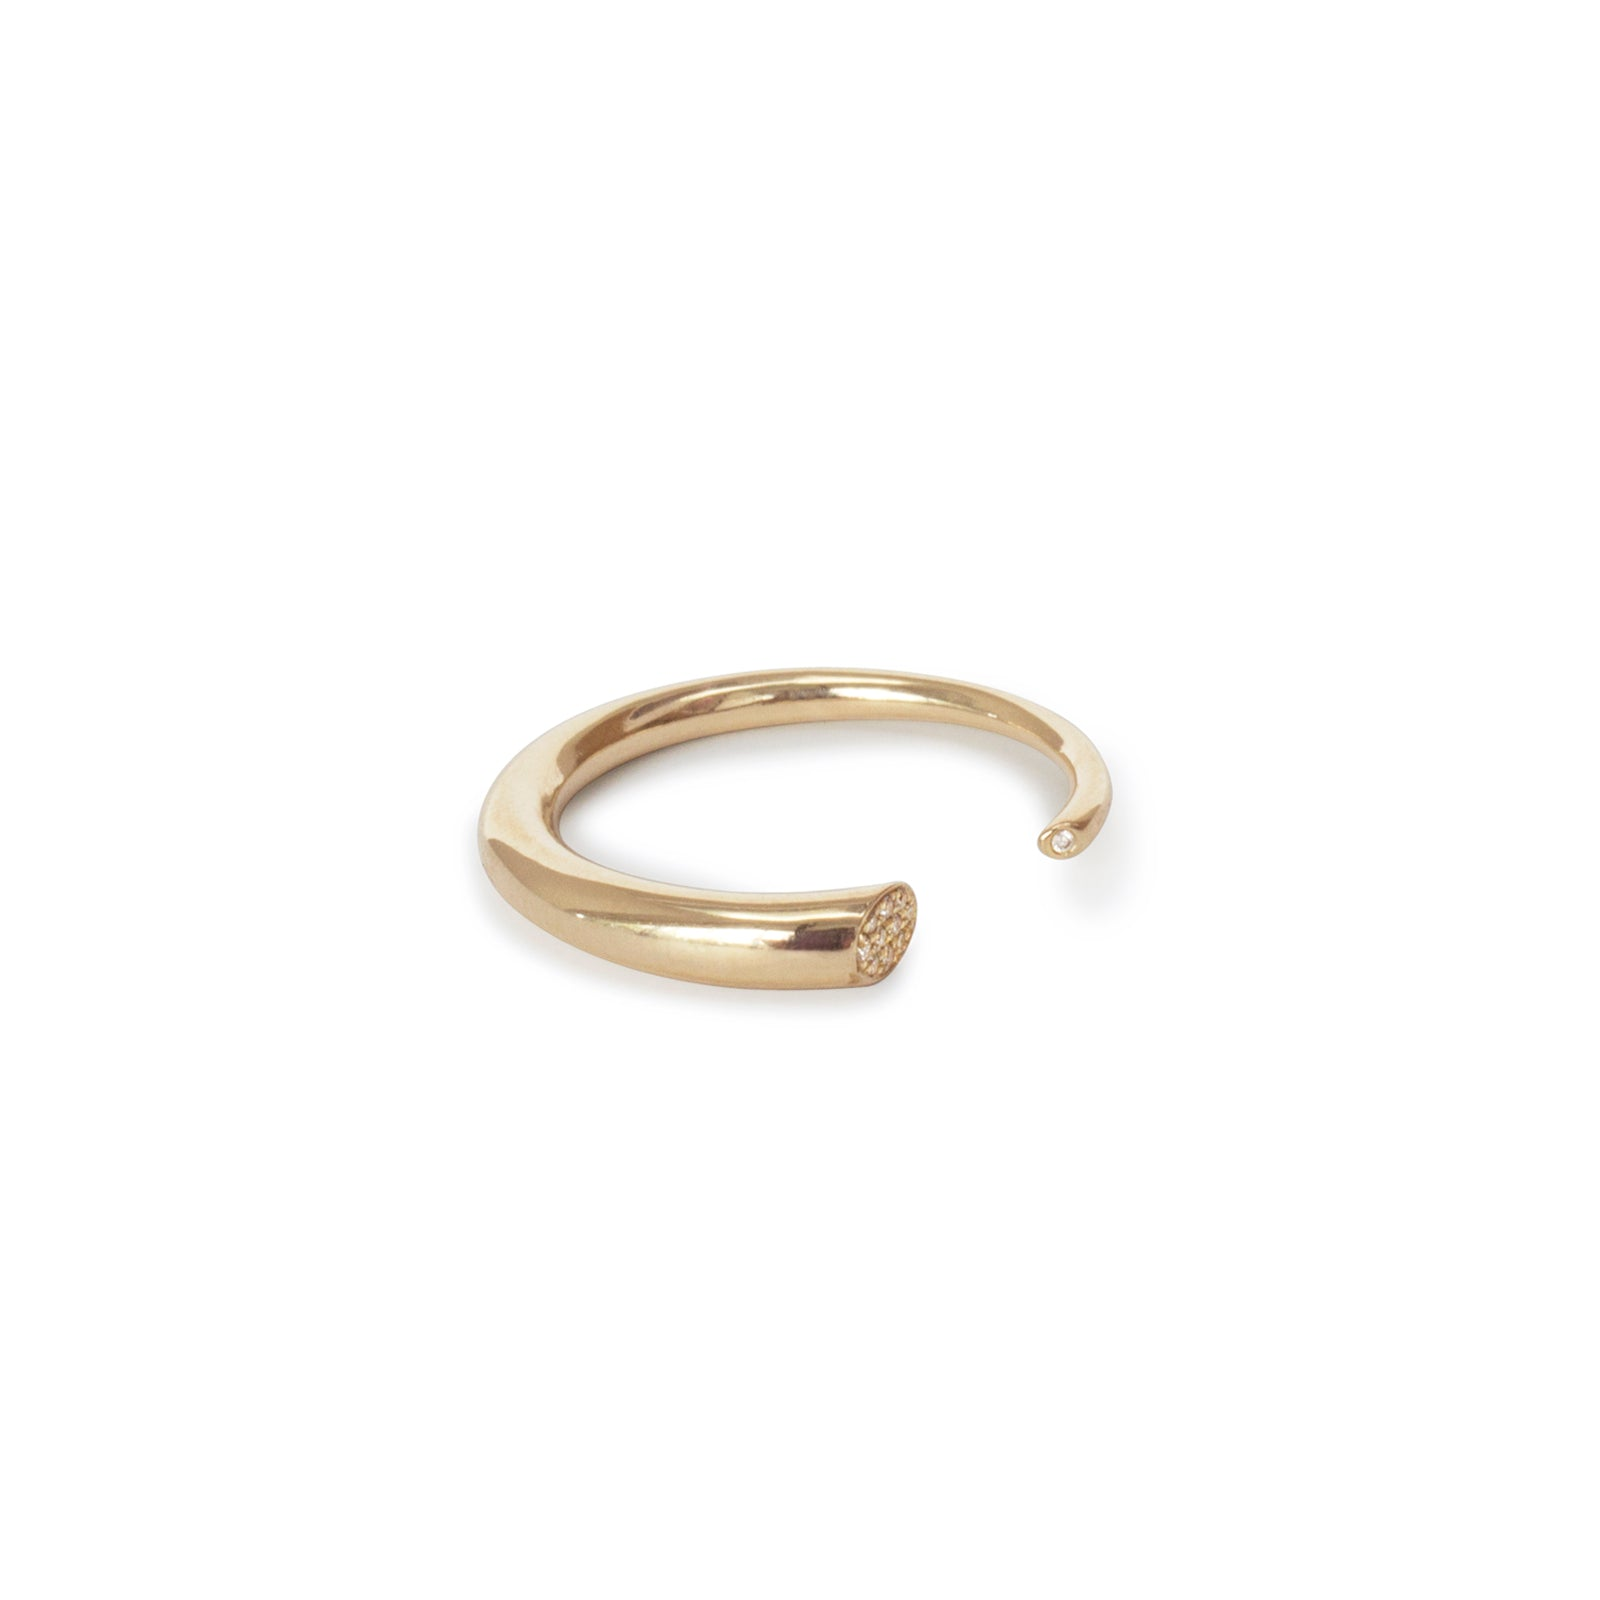 14k yellow gold w/white diamonds / tapered / 6 arpent stacking rings with diamonds